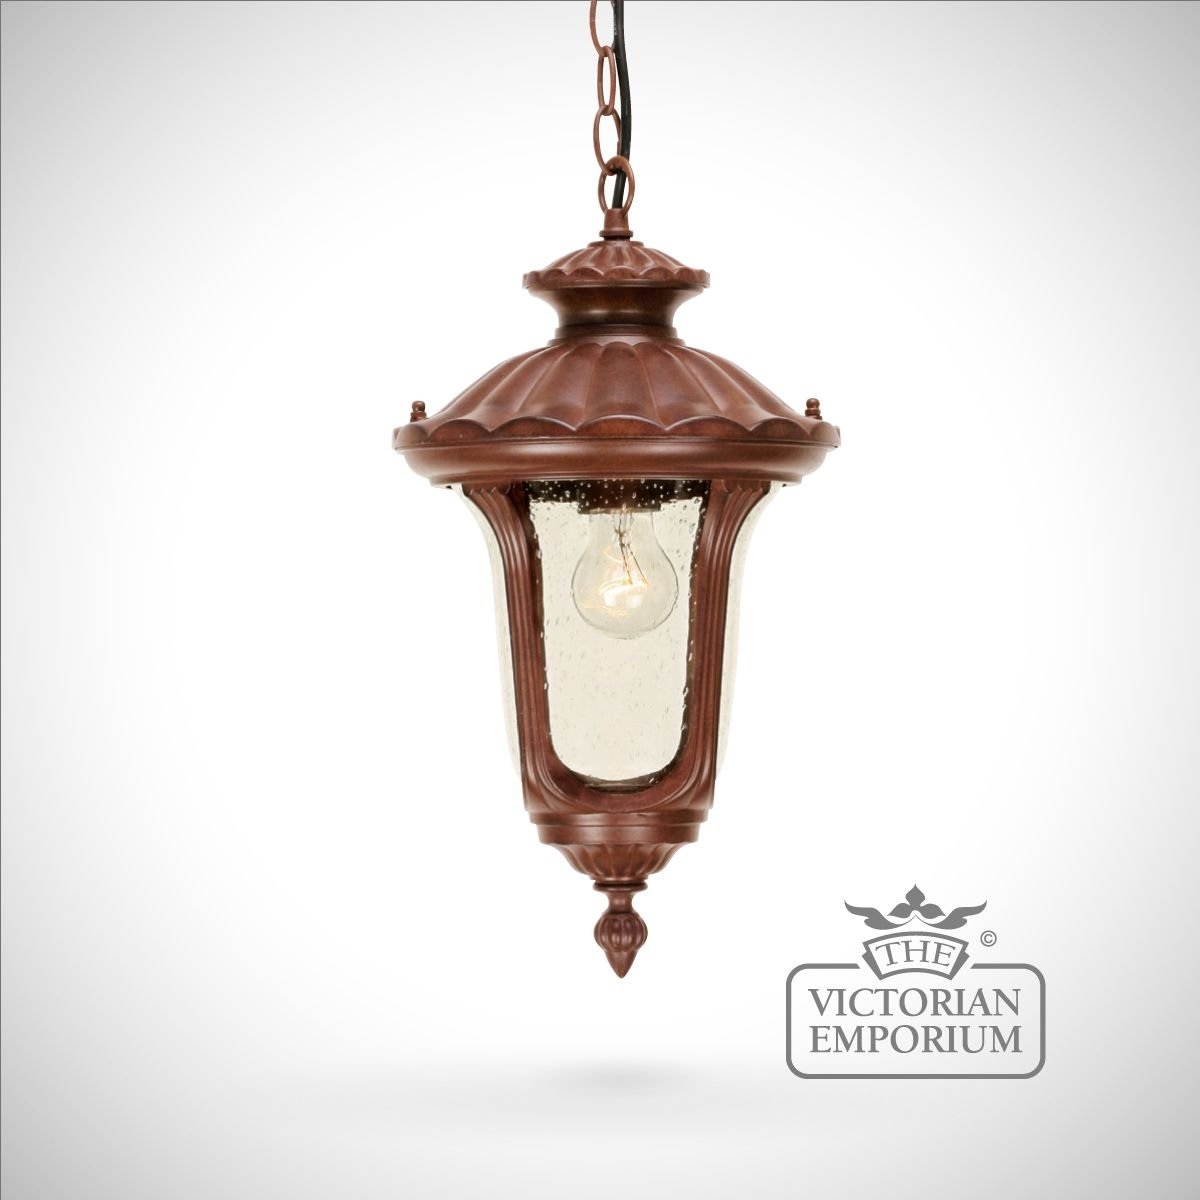 small chain lantern exterior ceiling lights. Black Bedroom Furniture Sets. Home Design Ideas